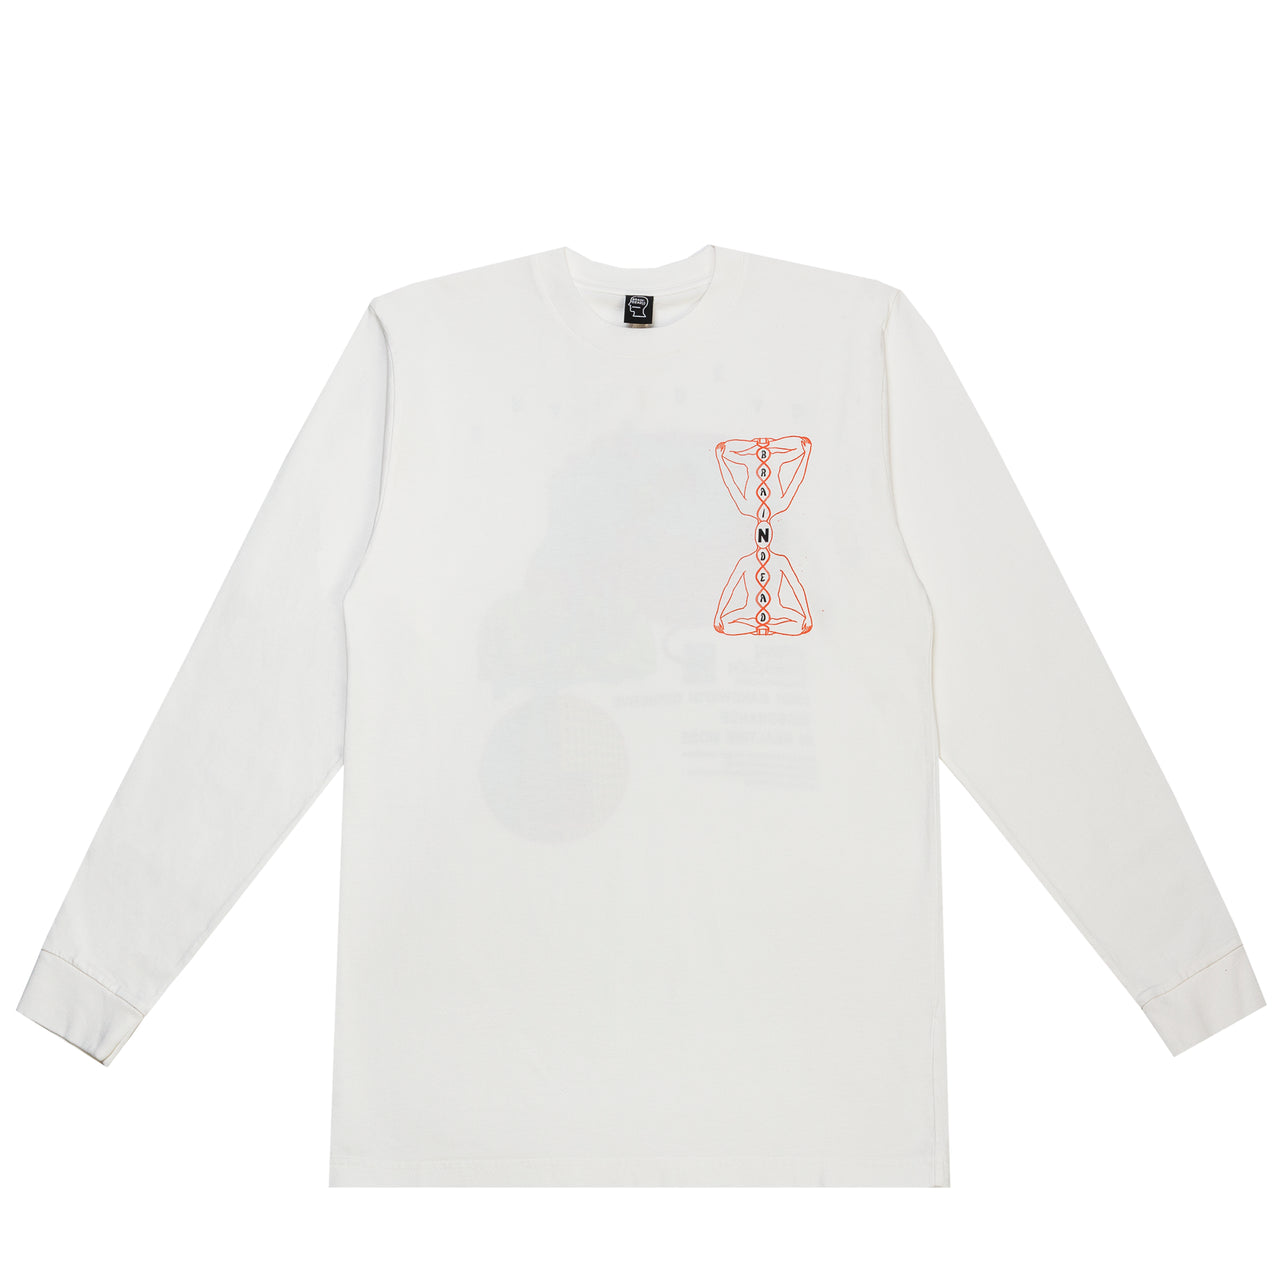 HUMAN DIMENSION LONG SLEEVE T-SHIRT